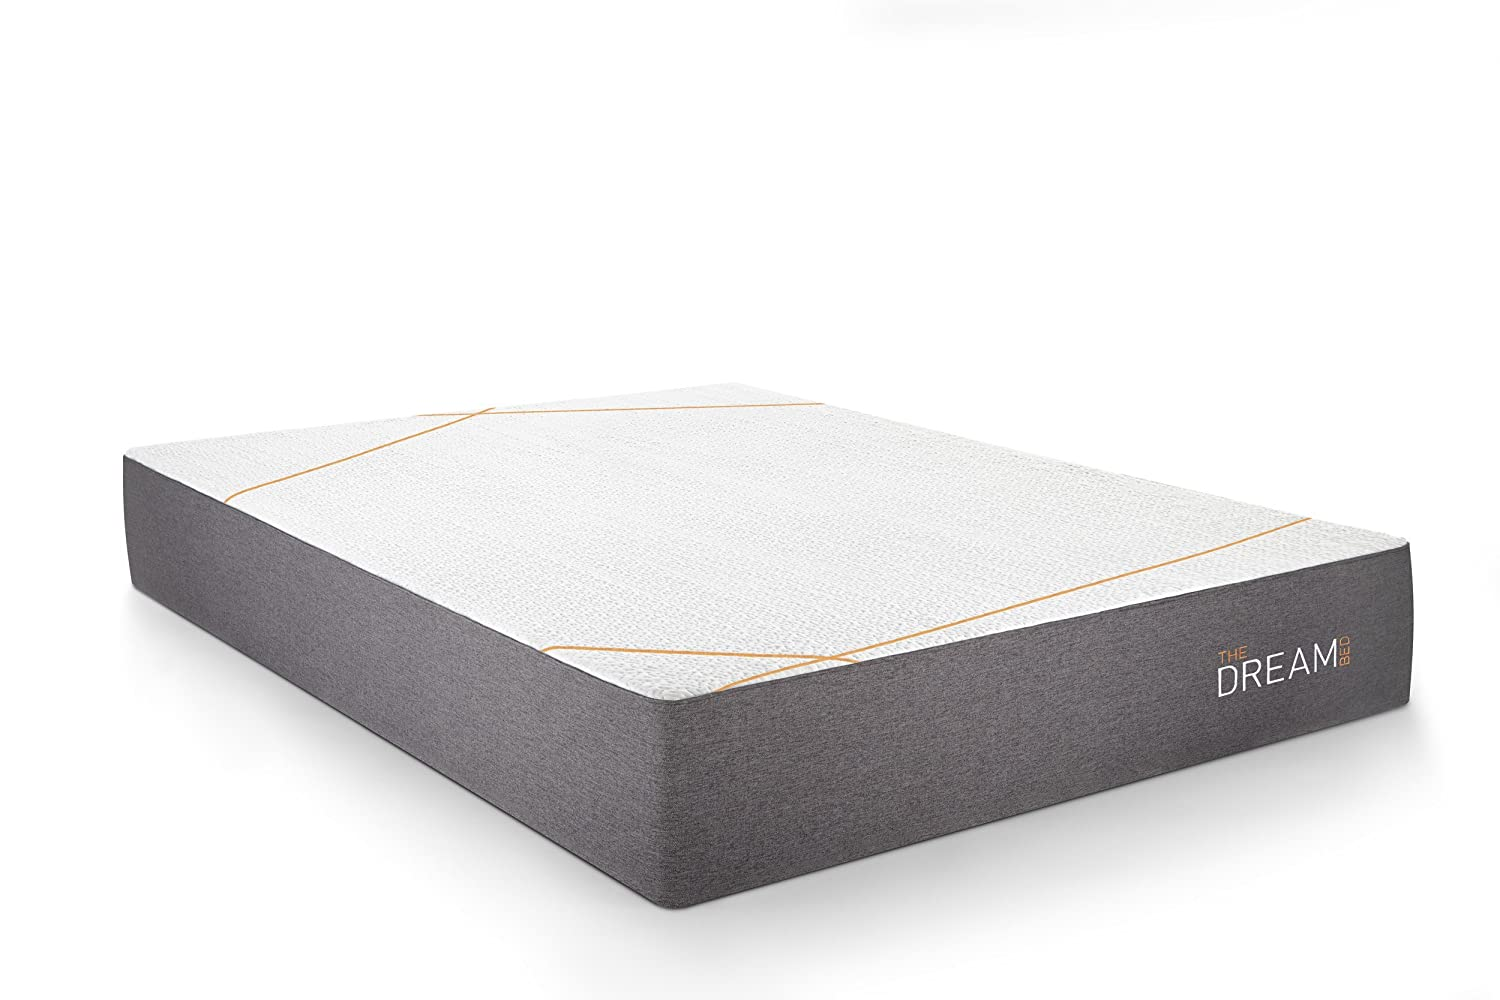 Original 10-inch Certi-Pur Certified Memory Foam Mattress by Dream Bed - King